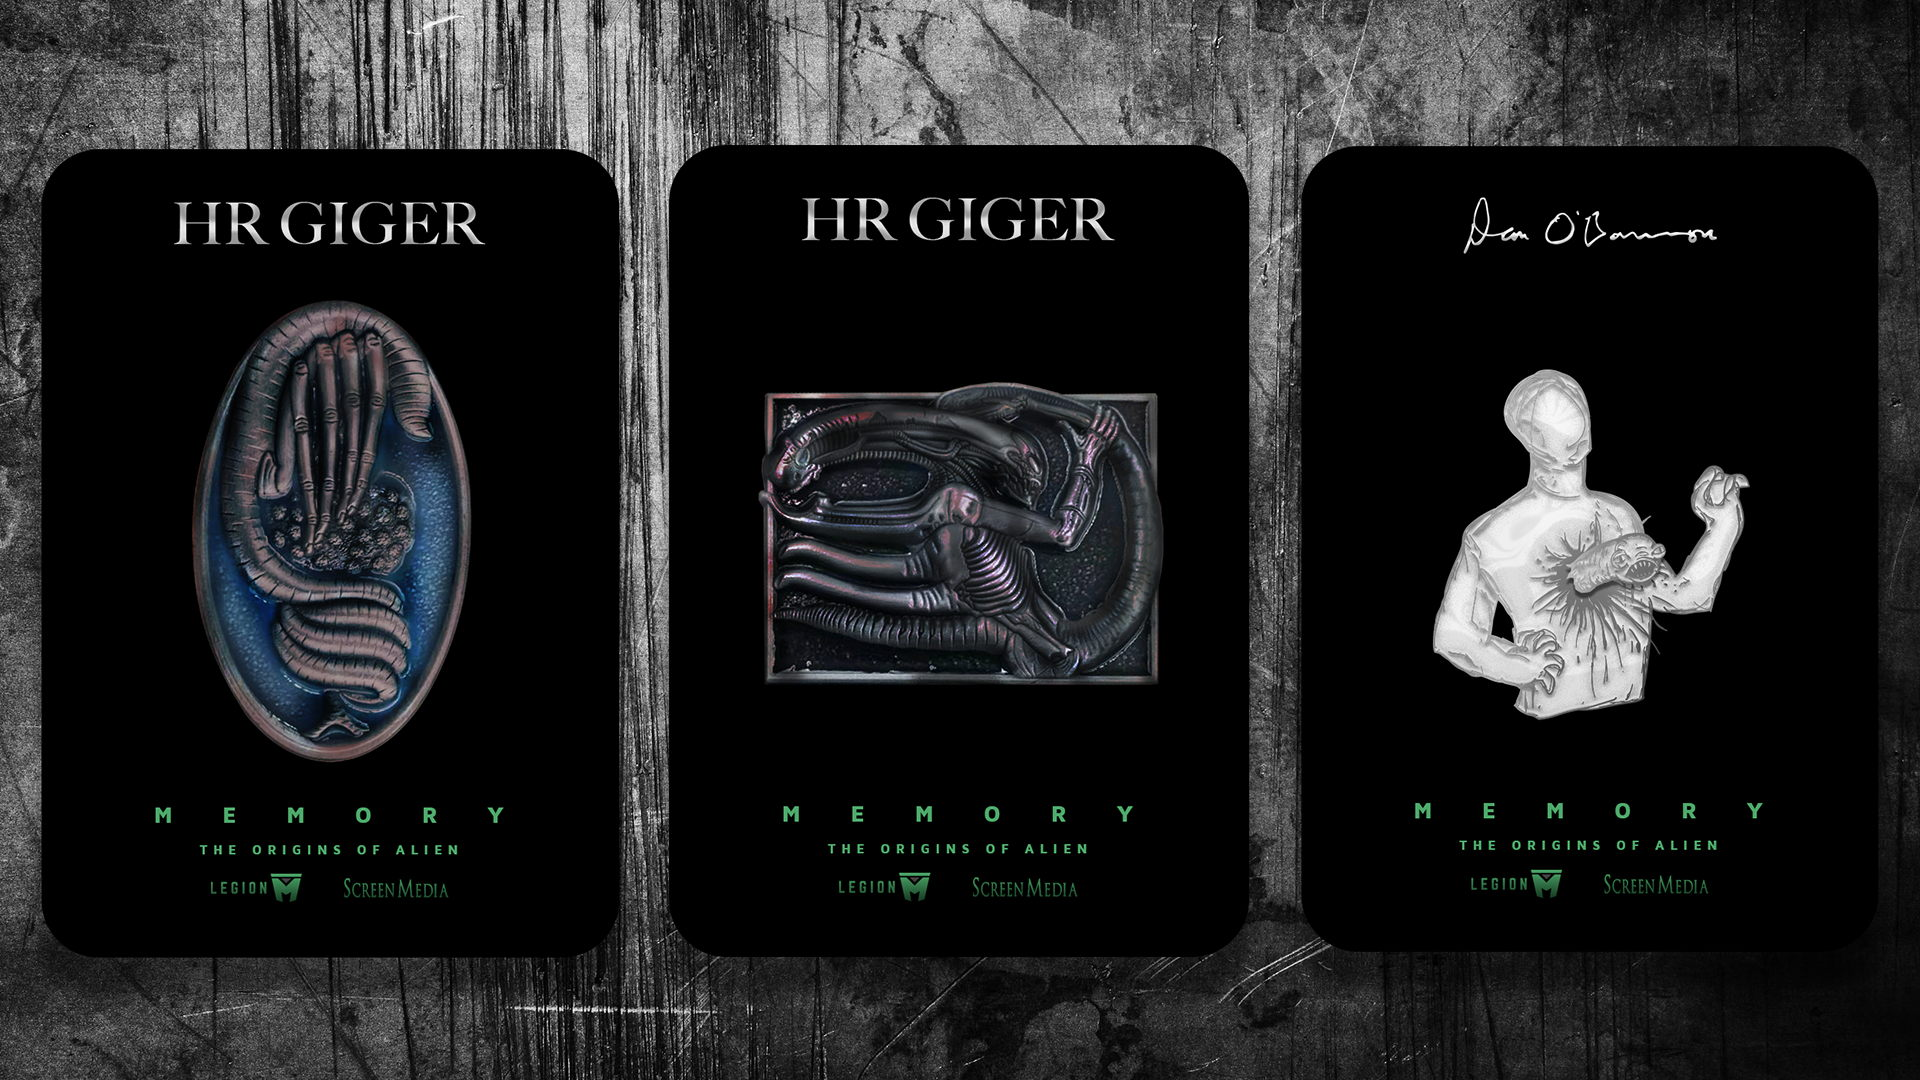 Legion M Limited Edition H R Giger And Dan O Bannon Pins